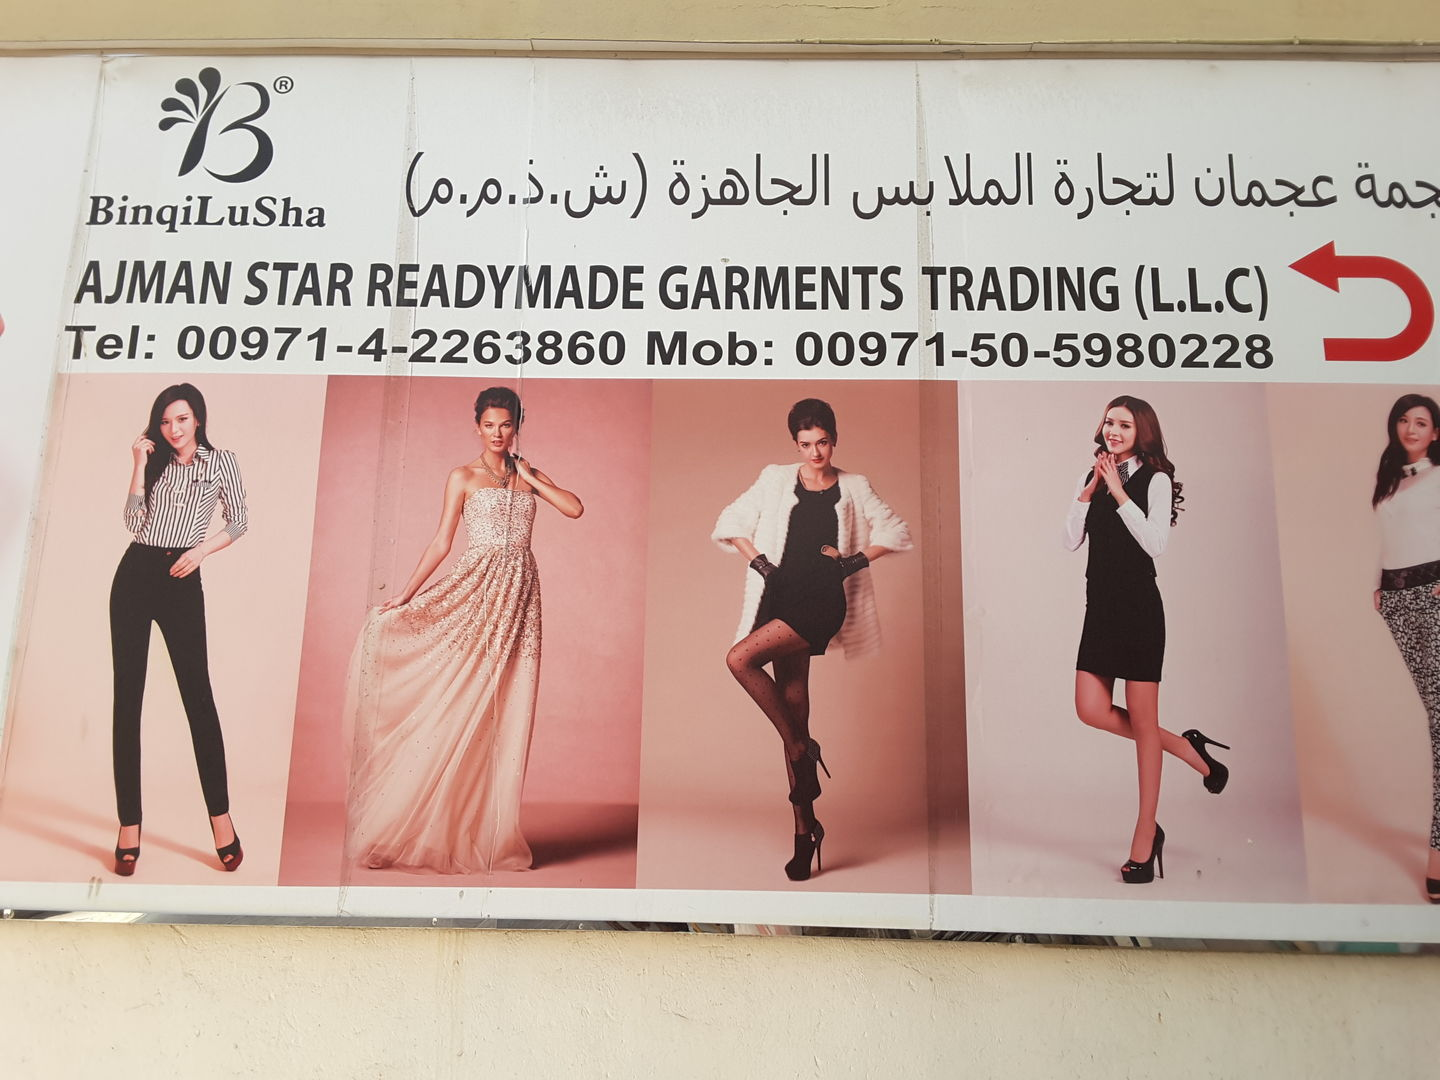 HiDubai-business-ajman-star-readymade-garments-trading-b2b-services-distributors-wholesalers-al-ras-dubai-2